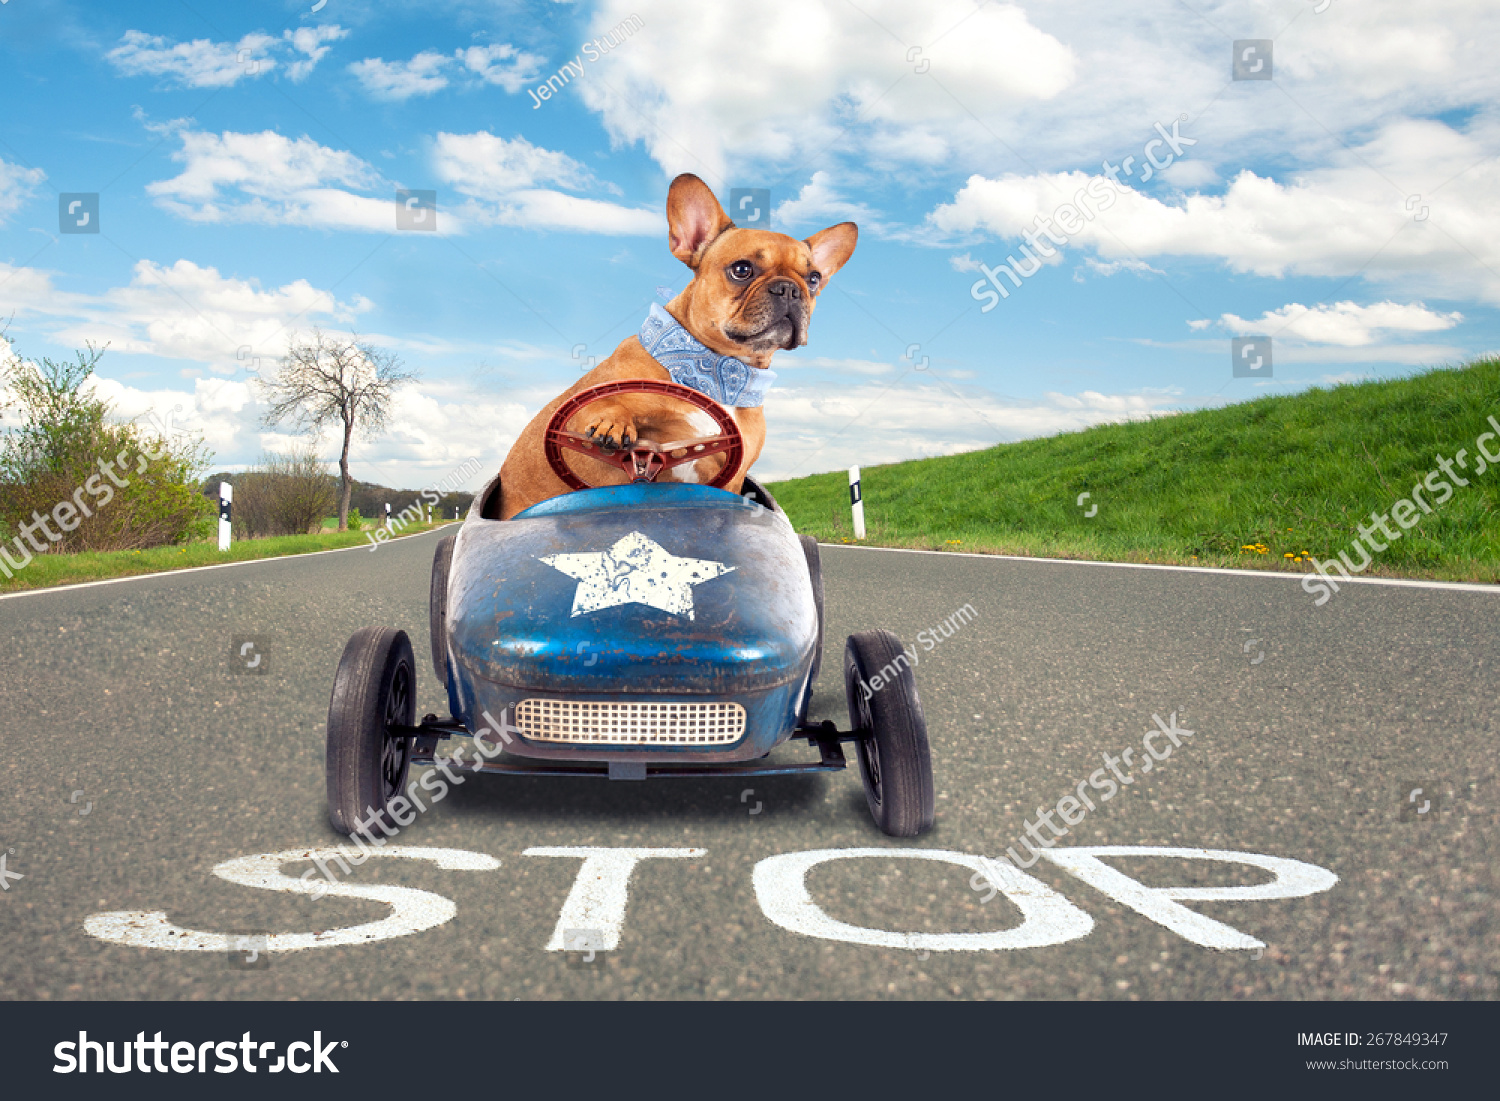 Dog French Bulldog Driving Toy Car Stock Photo 267849347 ...